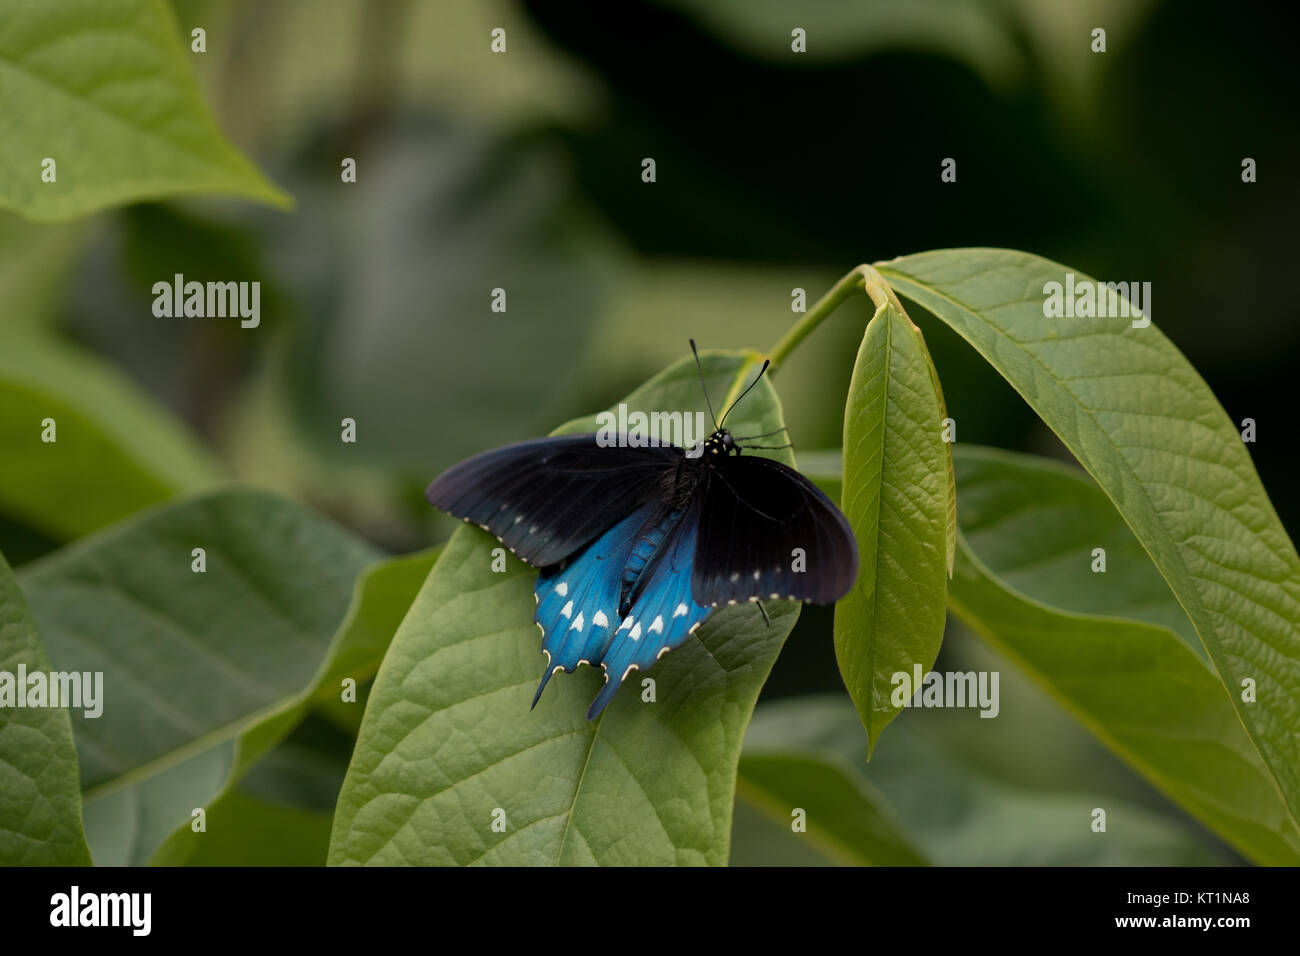 Pipevine swallowtail (Battus philenor) - Stock Image